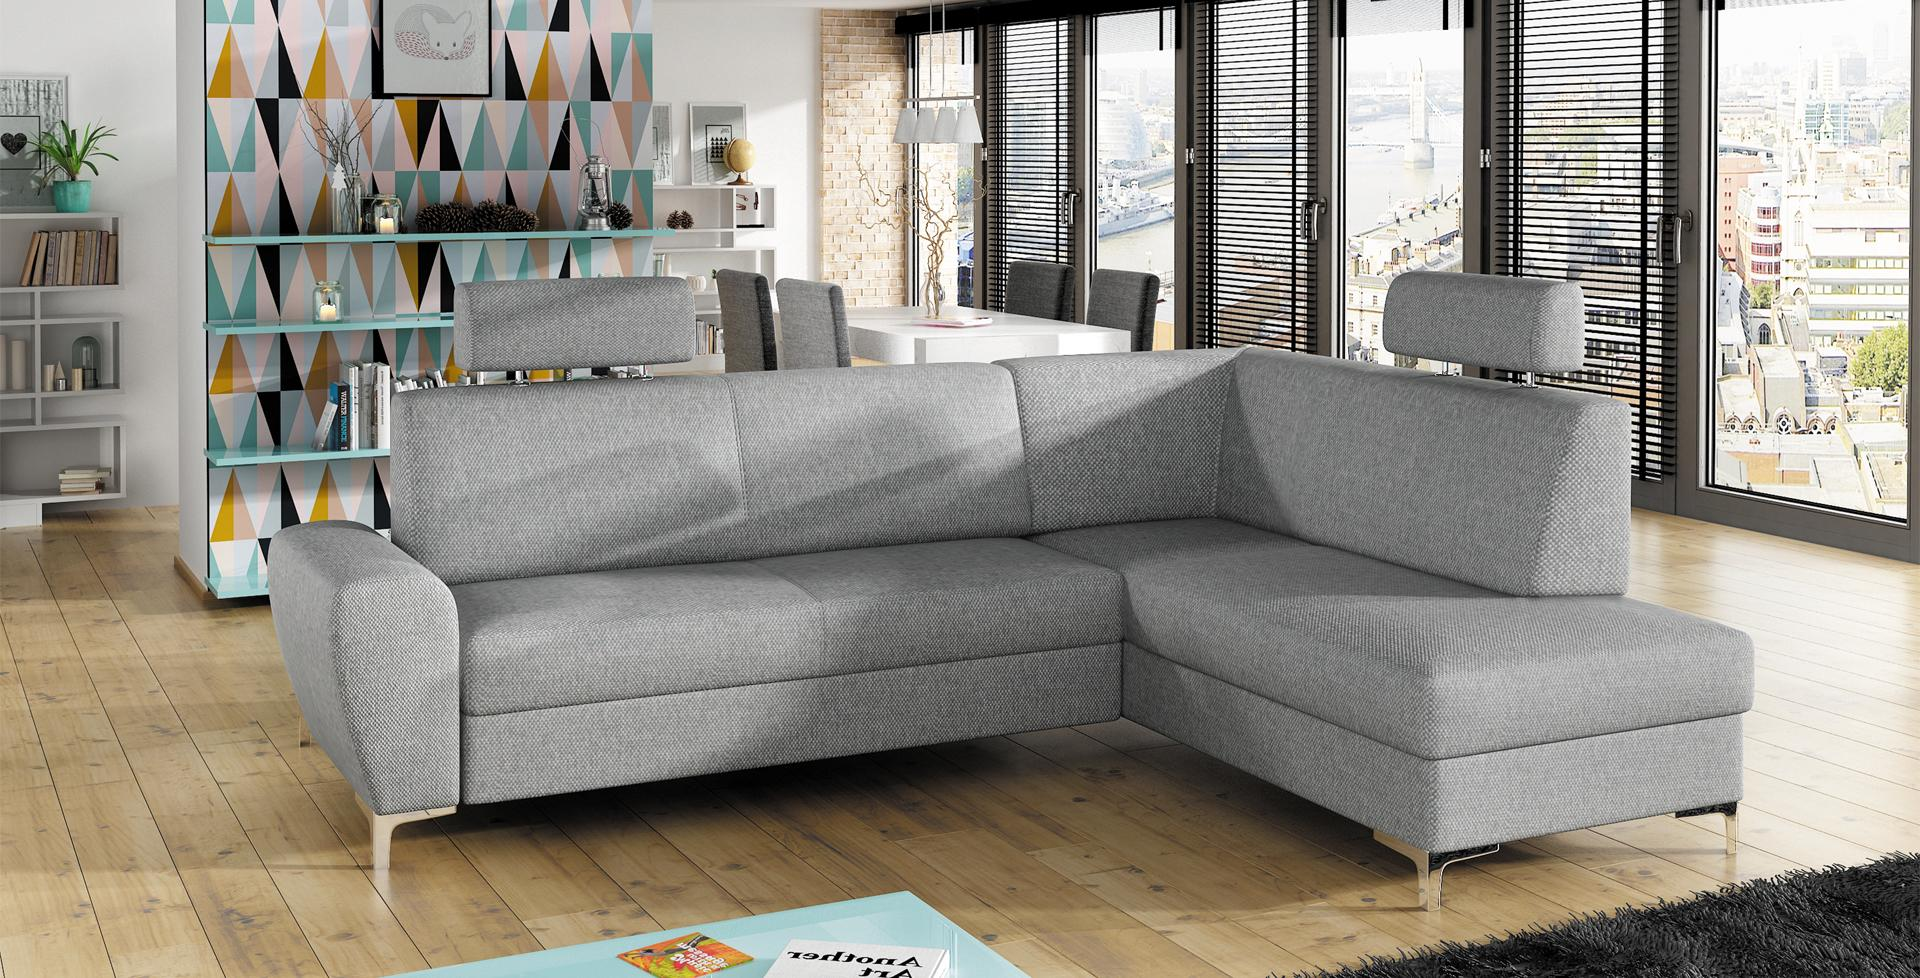 sofa schlafsofa designer sofa mit bettfunktion bettkasten ecksofa couch neu rino www. Black Bedroom Furniture Sets. Home Design Ideas